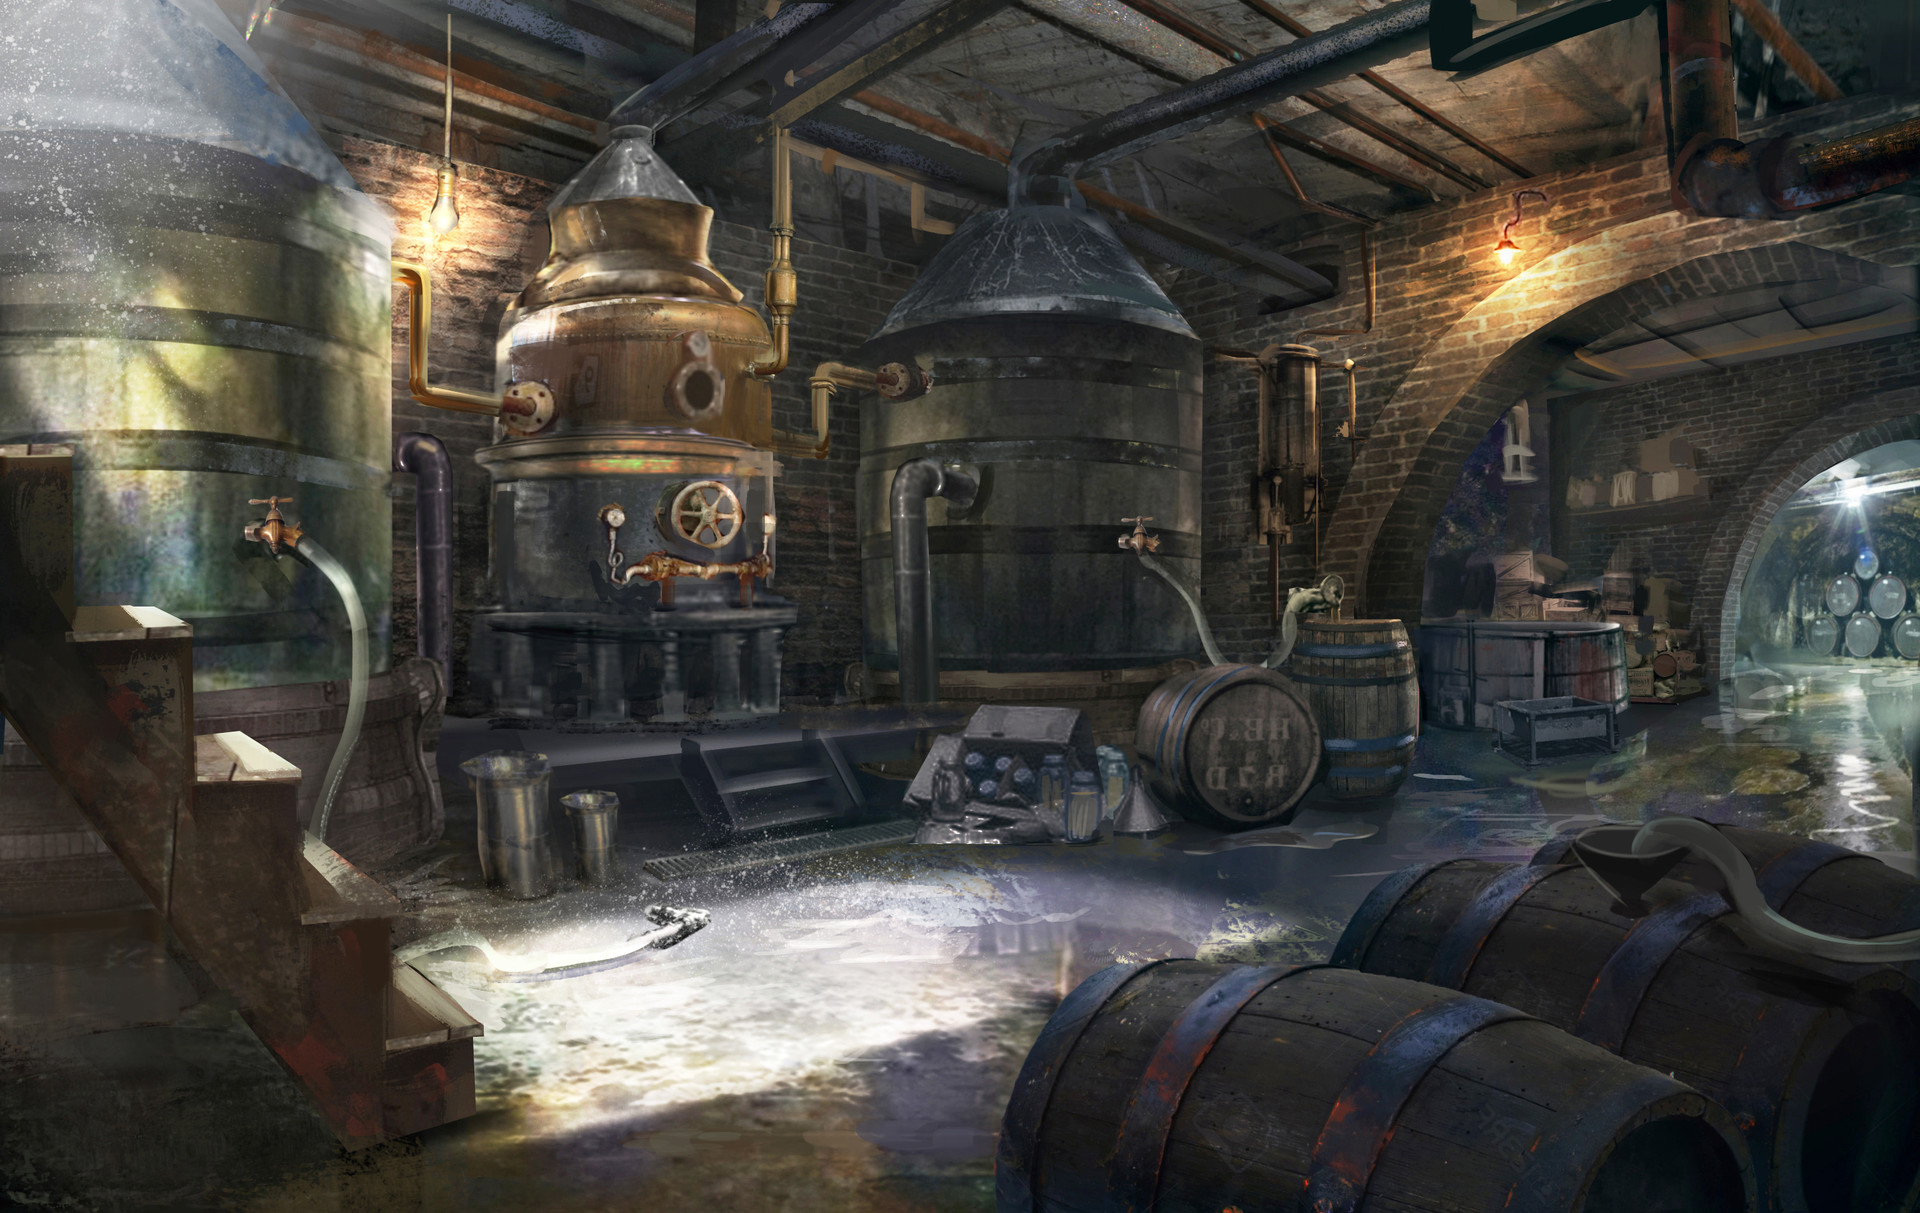 Robin lhebrard c421 distillery sketch2